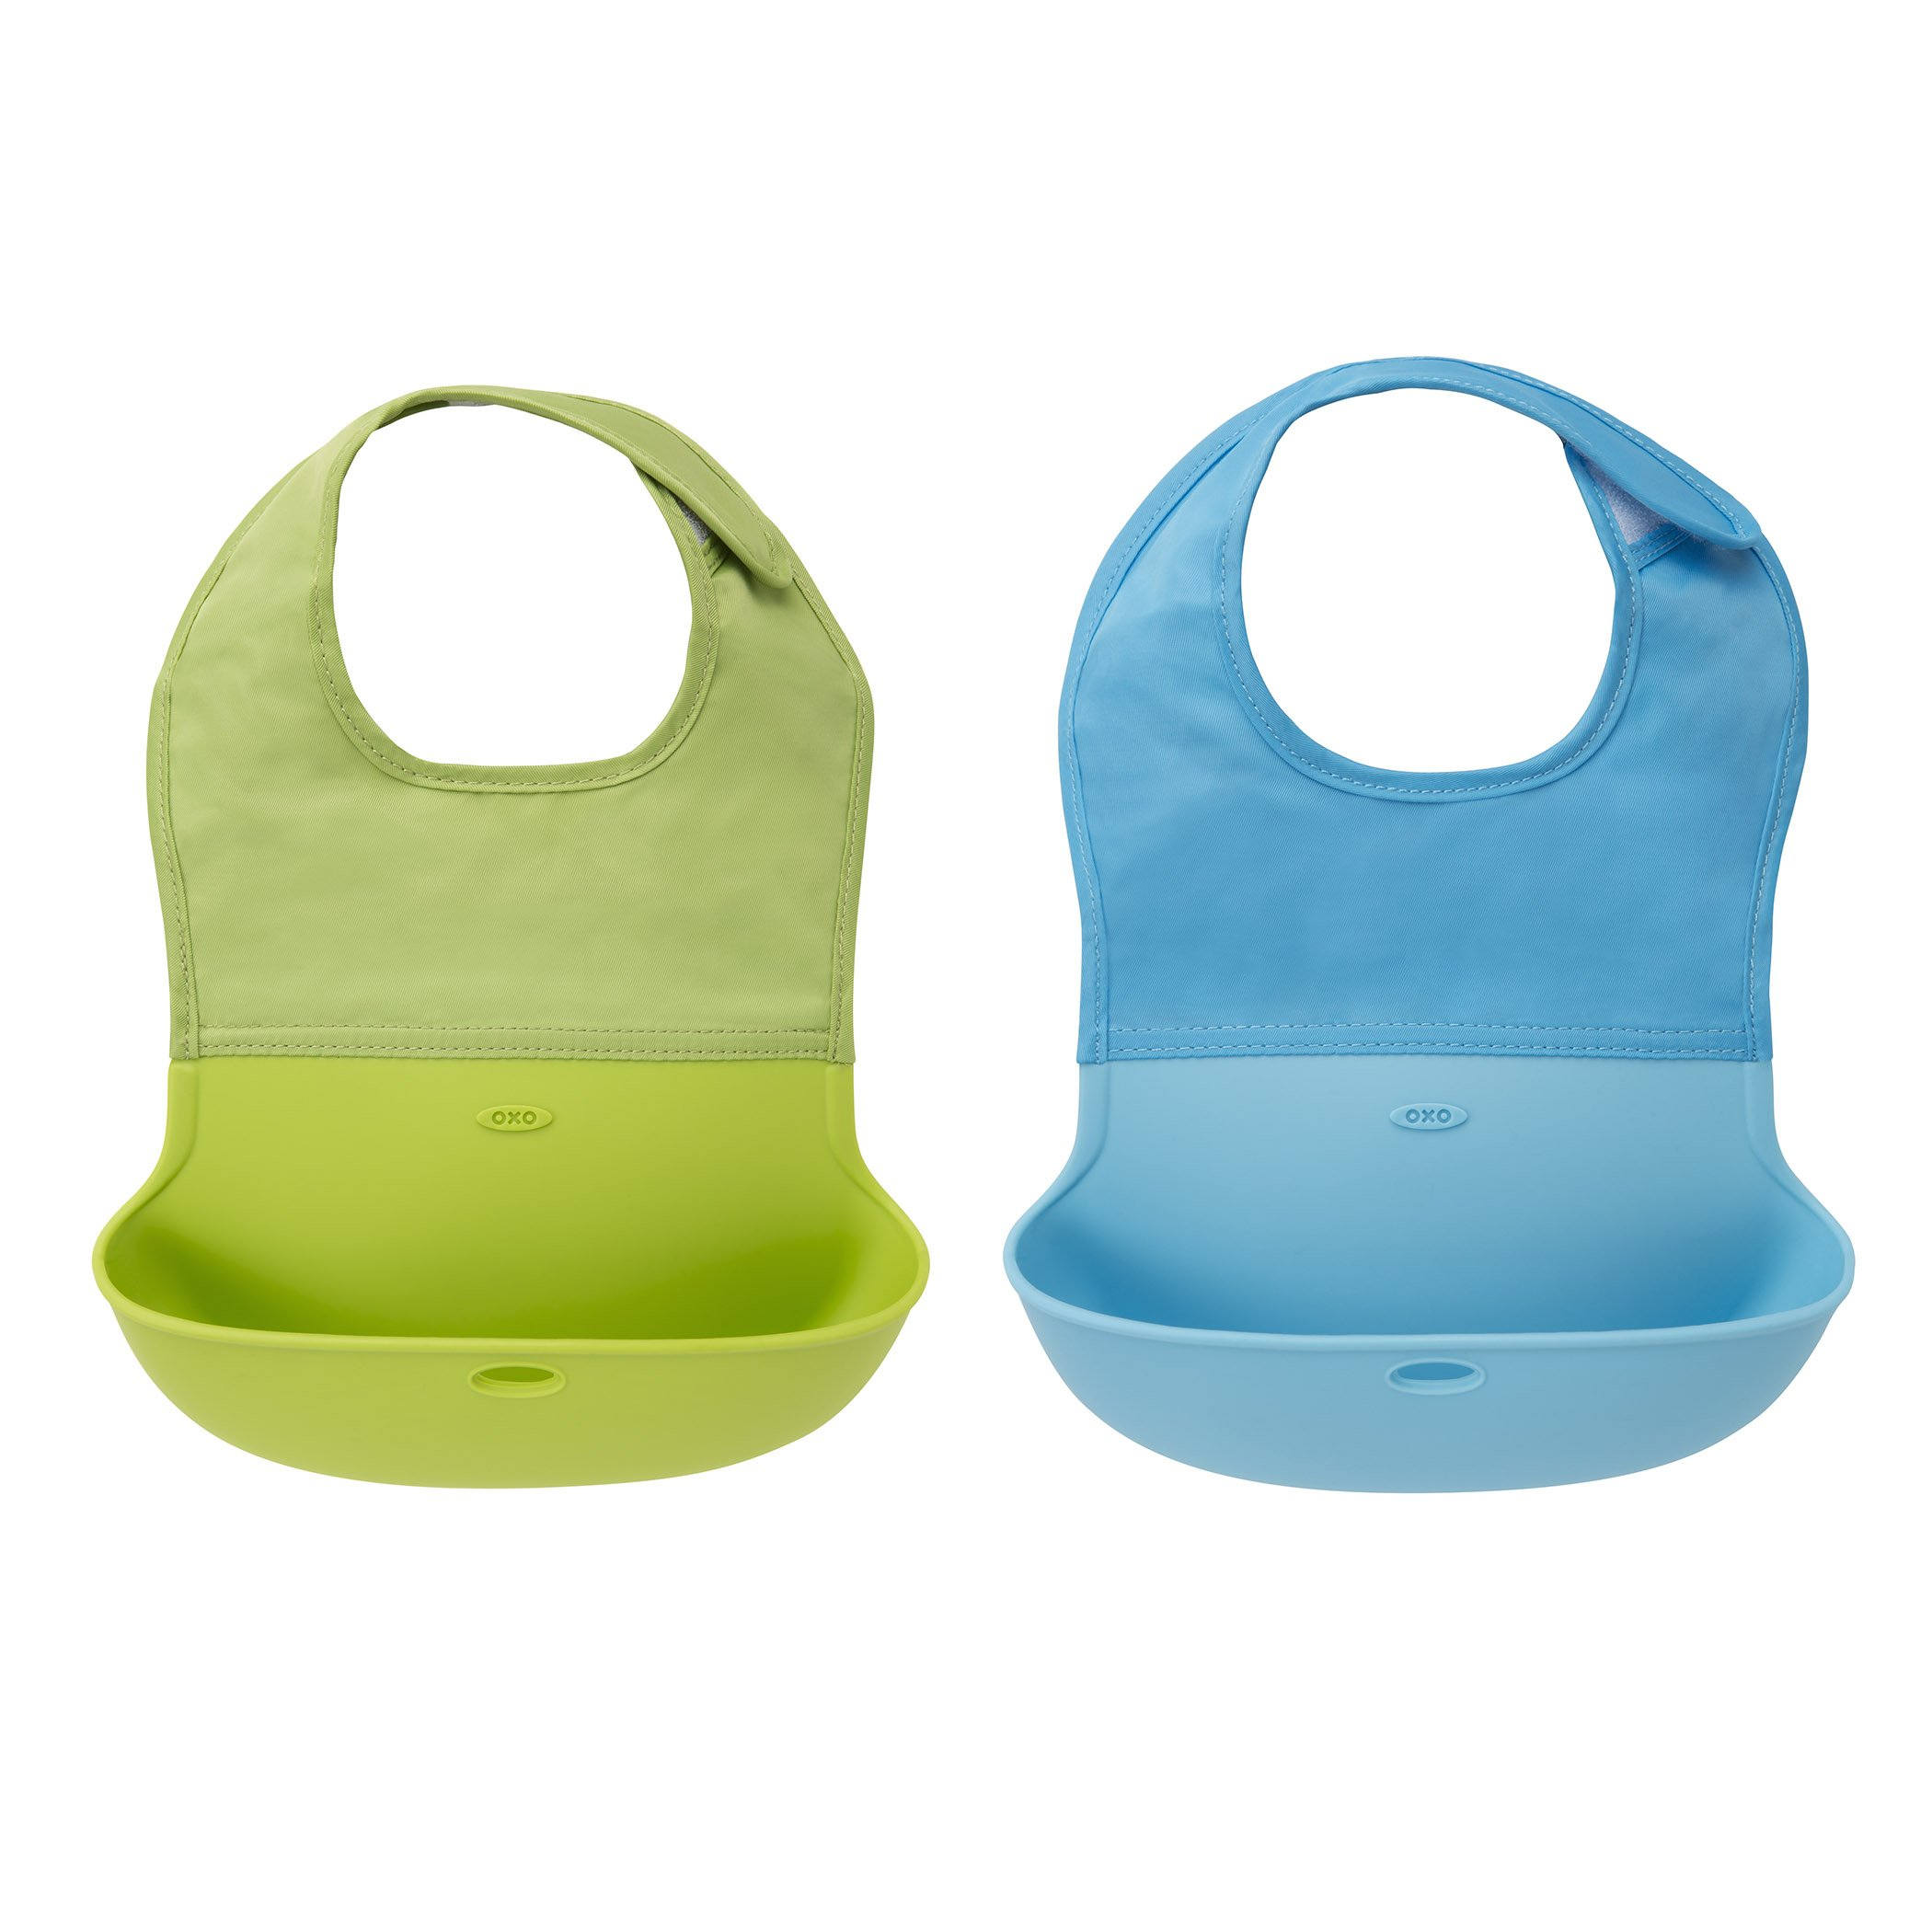 OXO Tot Waterproof Silicone Roll Up Bib with Comfort-Fit Fabric Neck, 2 Pack, Green/Aqua by OXO